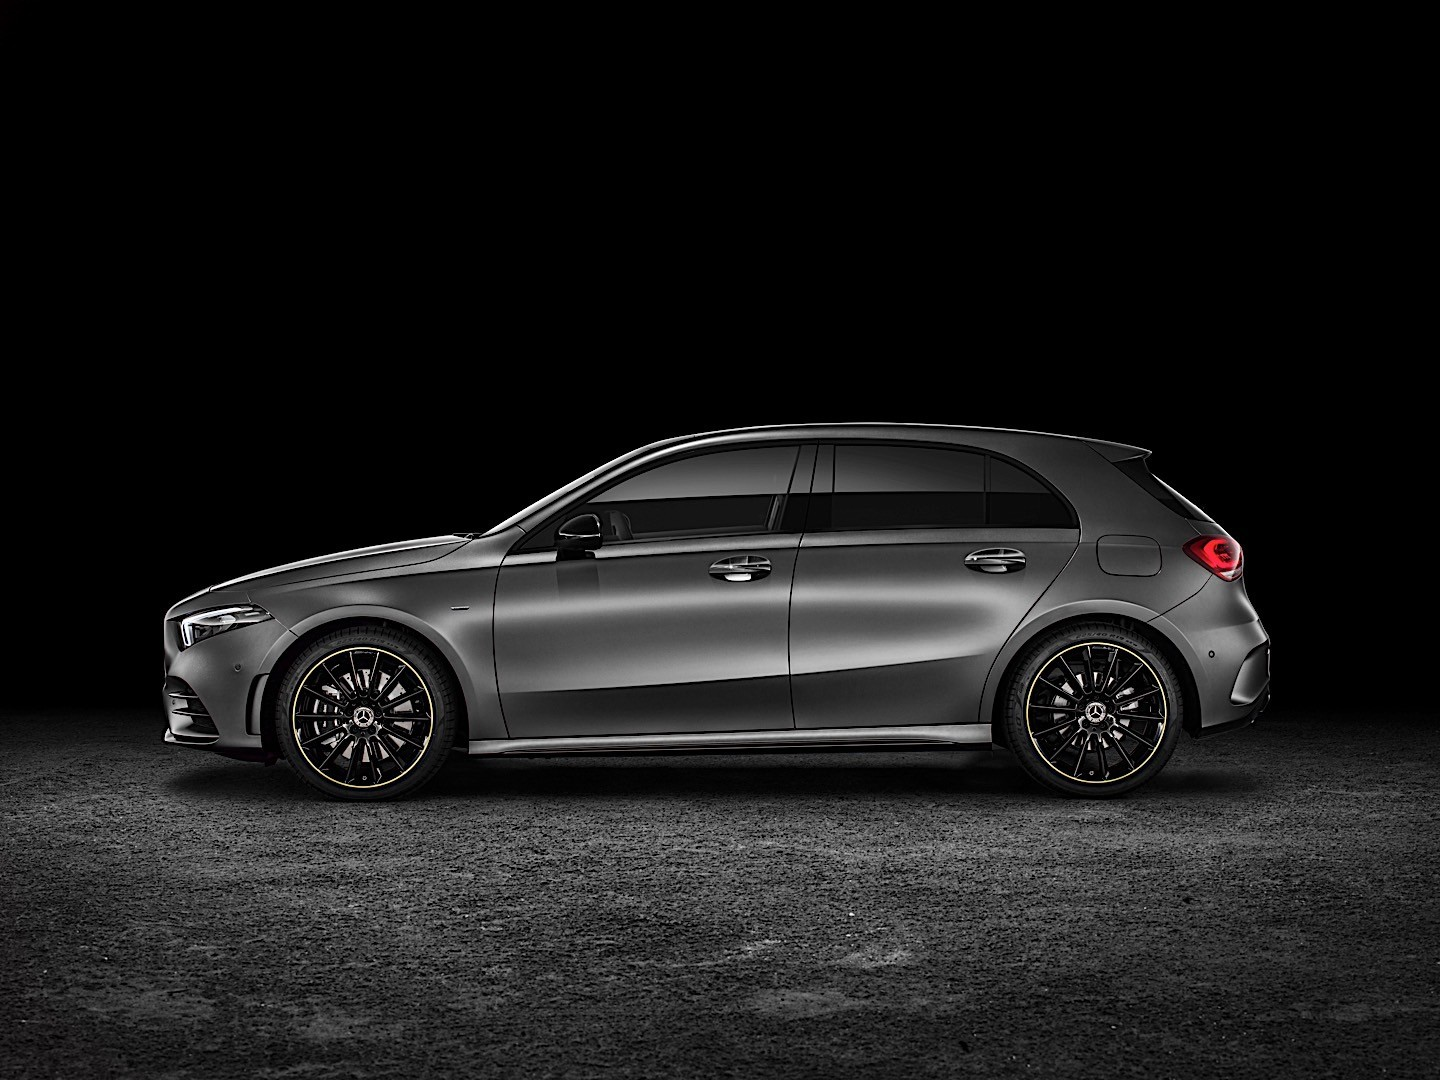 mercedes benz a class w177 specs 2018 autoevolution. Black Bedroom Furniture Sets. Home Design Ideas